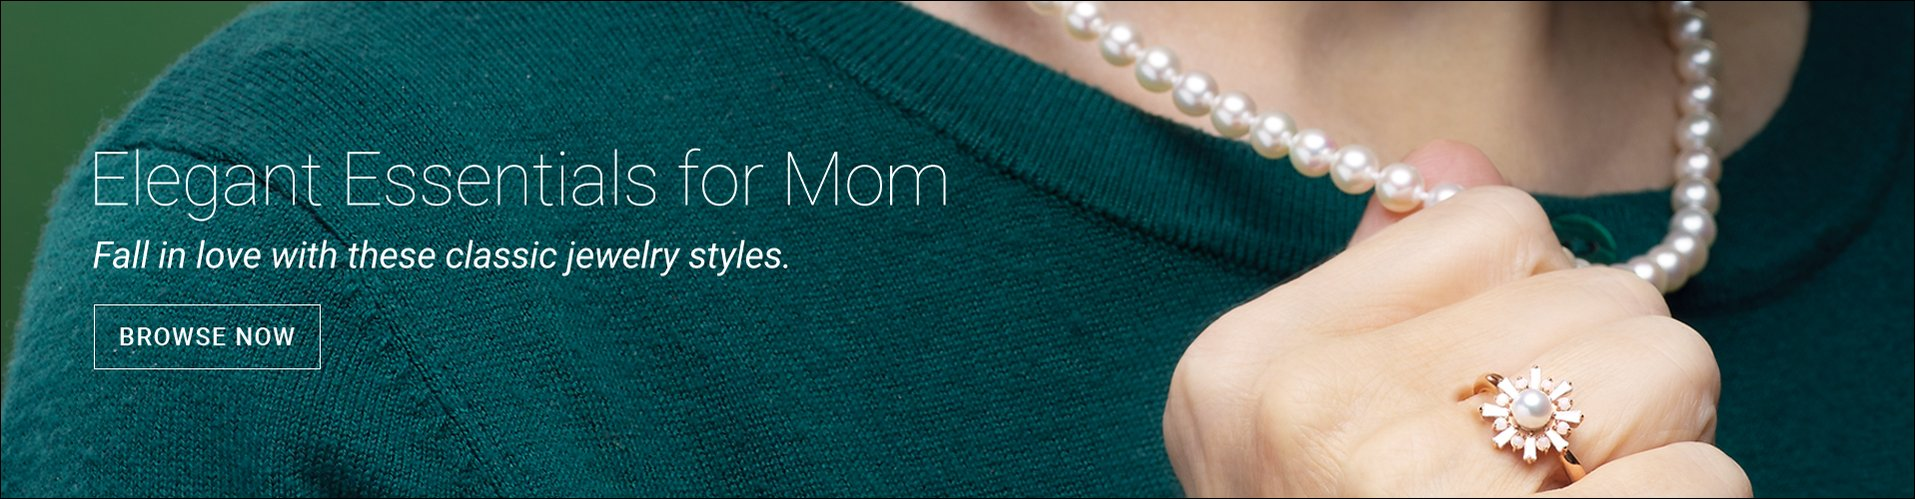 Elegant Essentials for Moms - Fall in love with these classic jewelry styles